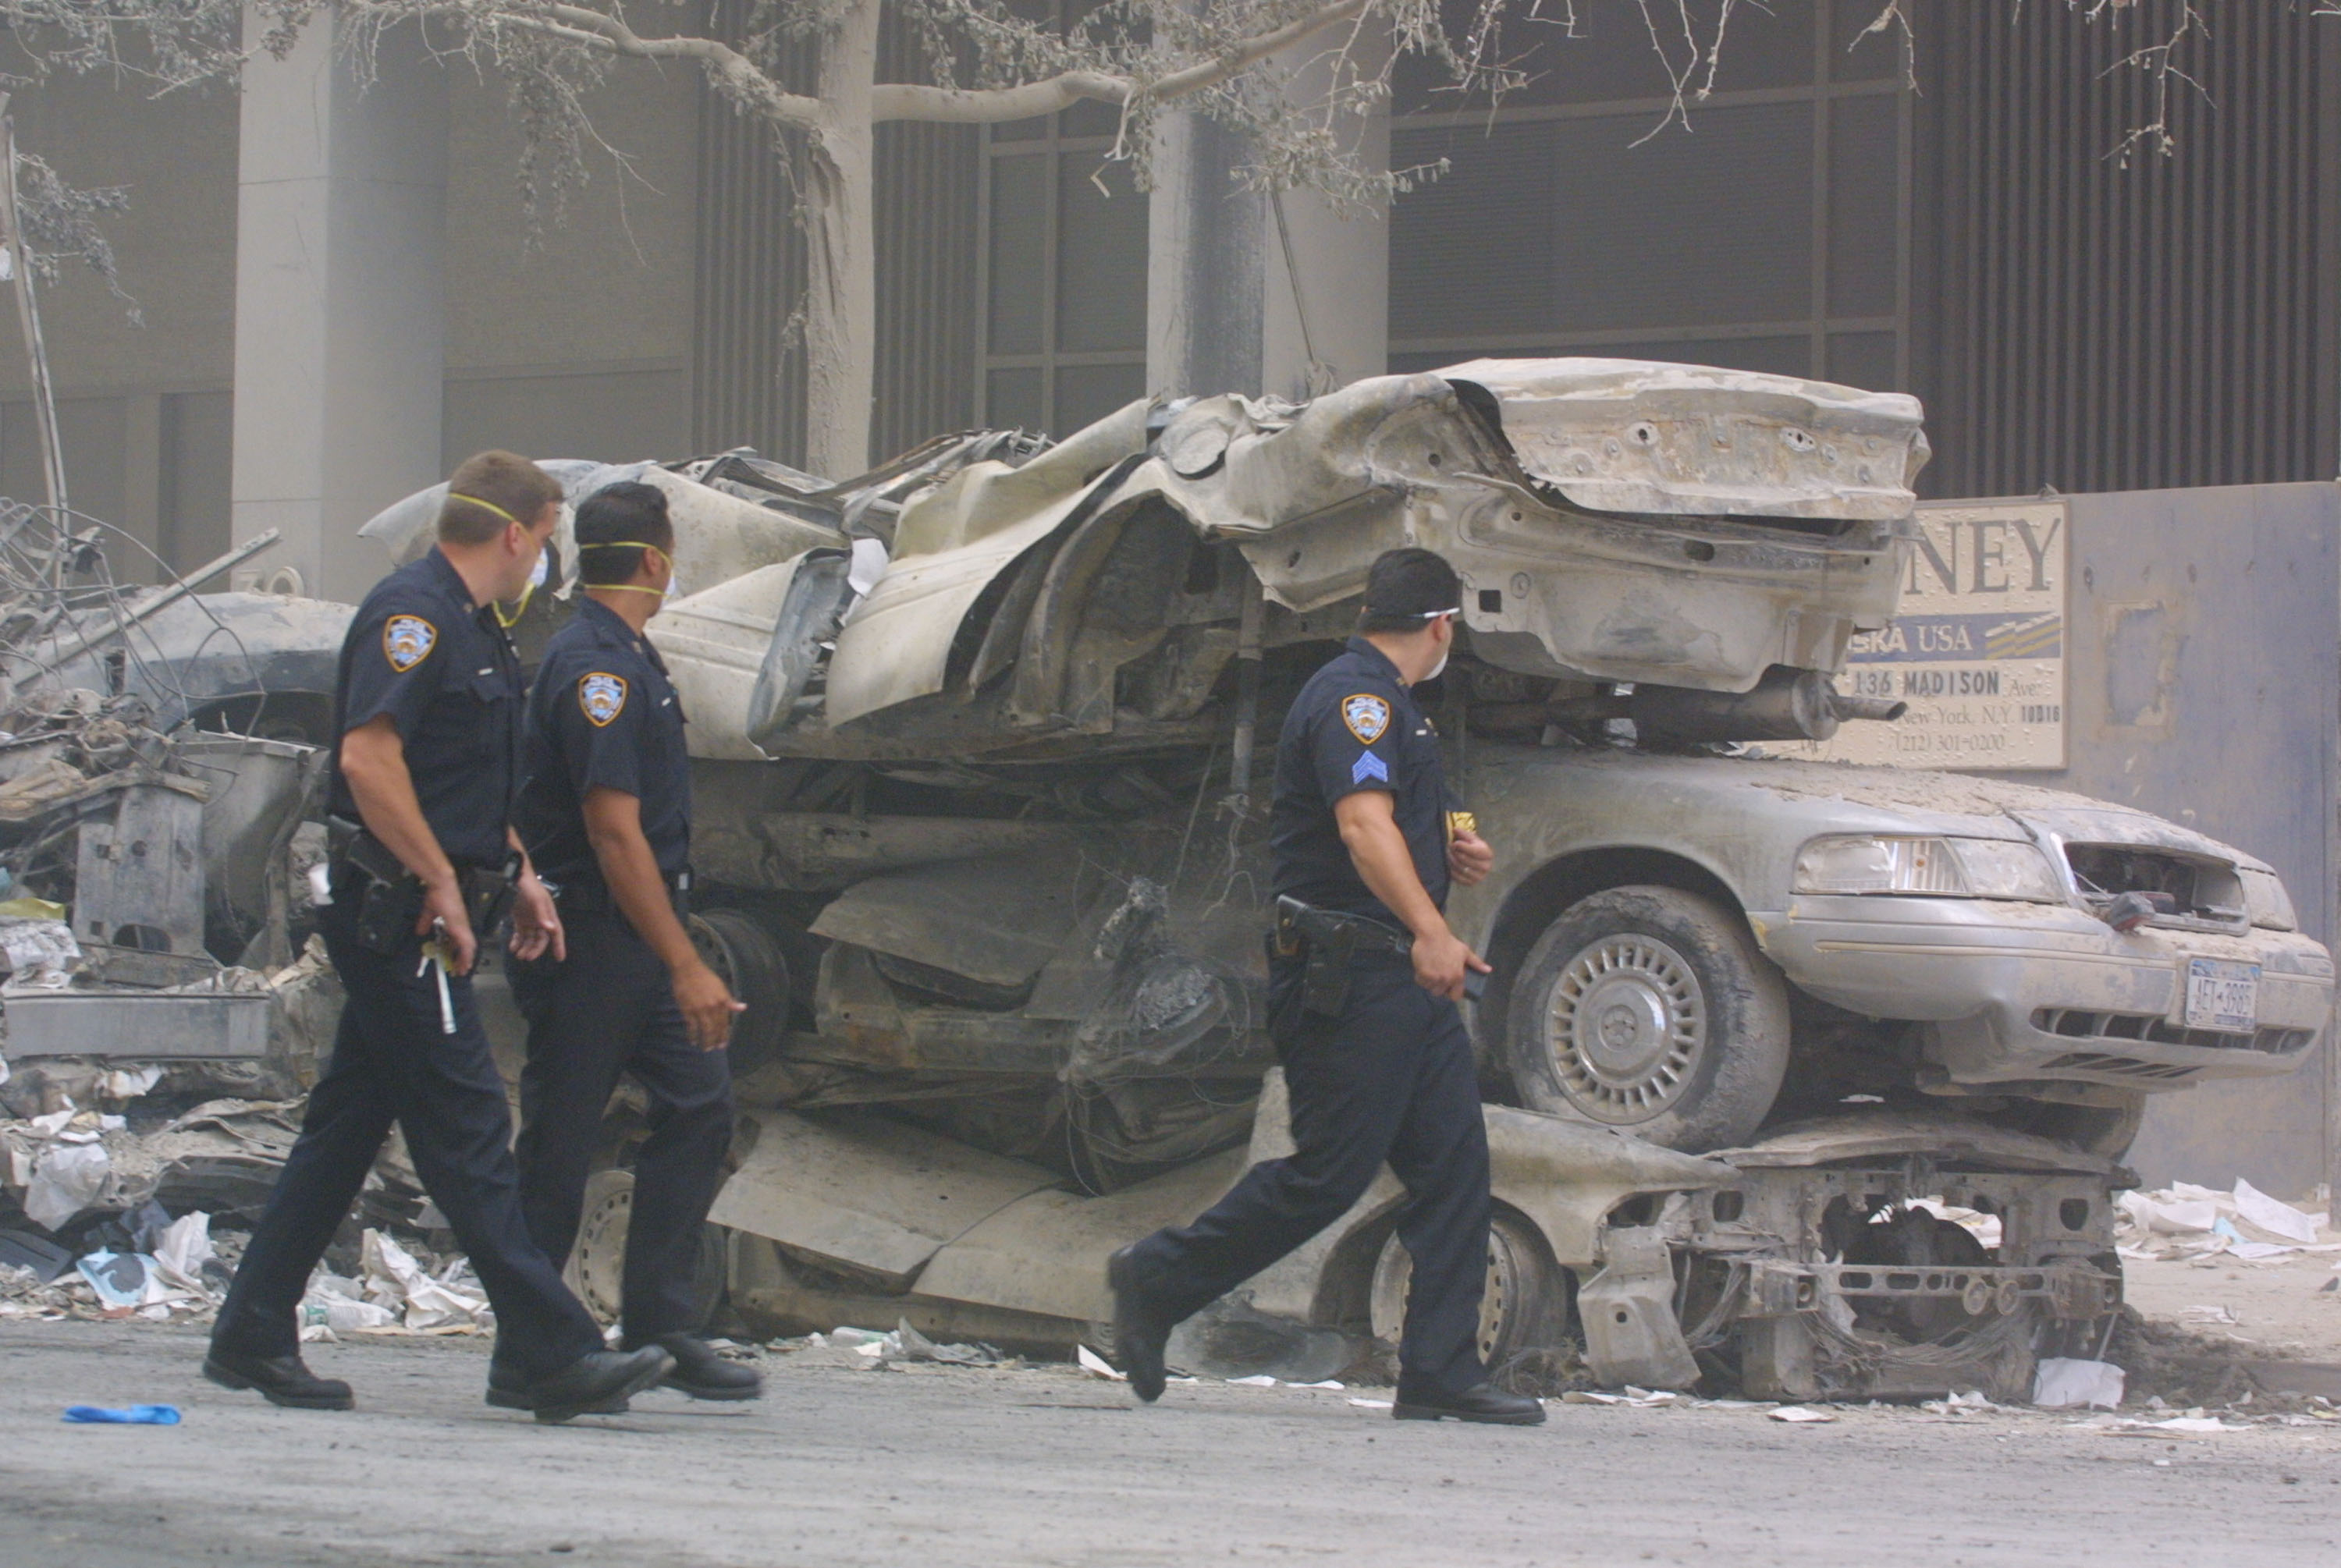 Policemen walk past crushed cars near the wreckage of the World Trade Center on Sept. 13, 2001 in New York City.